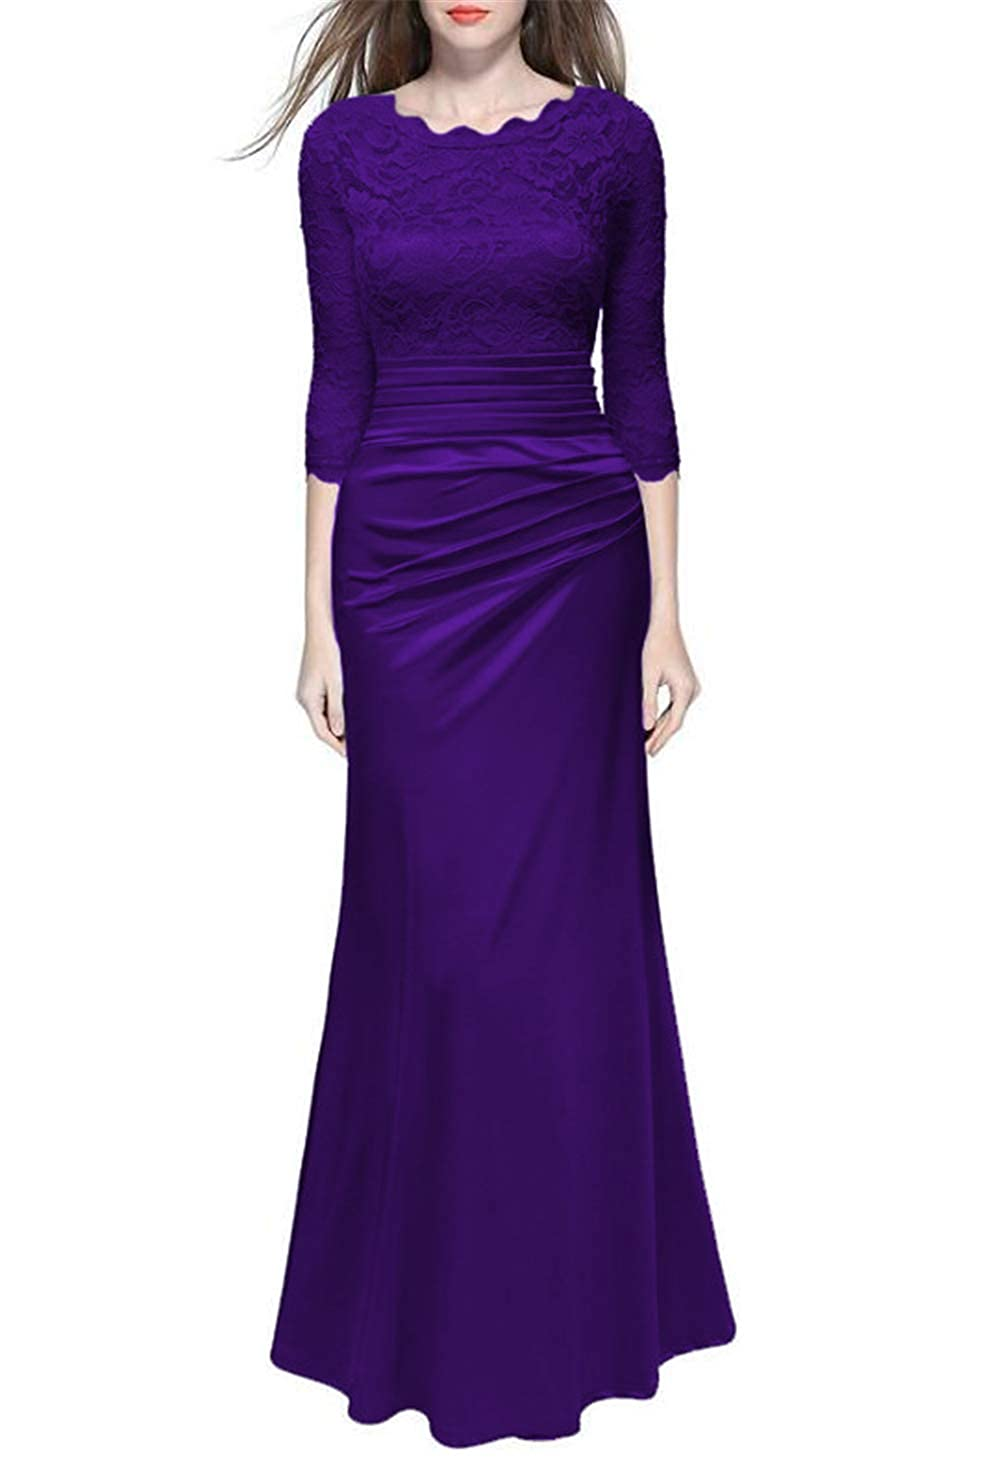 Evening Gown for Women Lace Wedding Dress Bridal Dresses 3//4 Sleeve Maxi Long Empire Waist